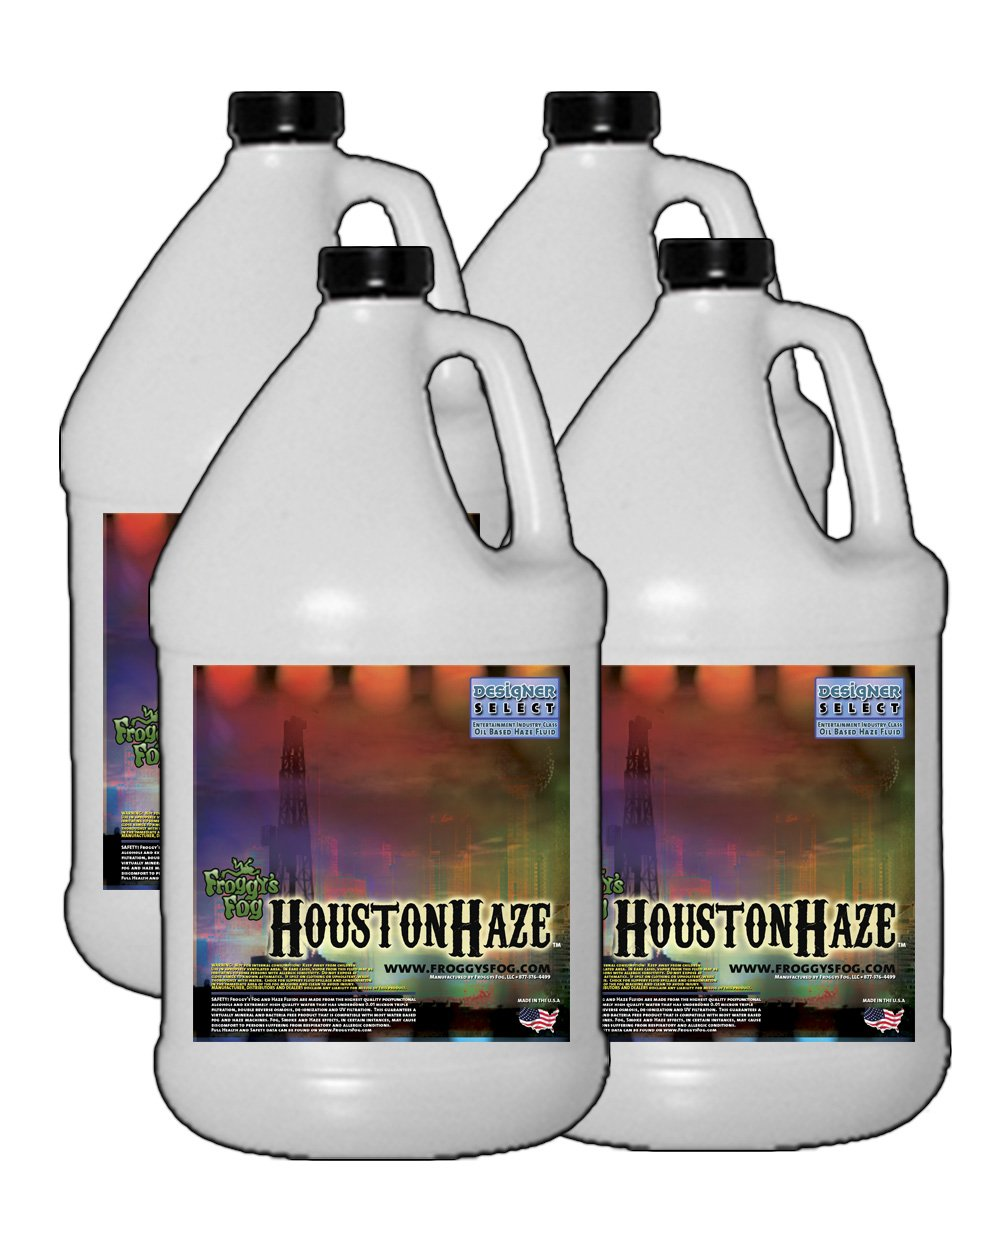 4 Gal - Houston Haze - Designer Select Oil Based Fluid for Haze Generators